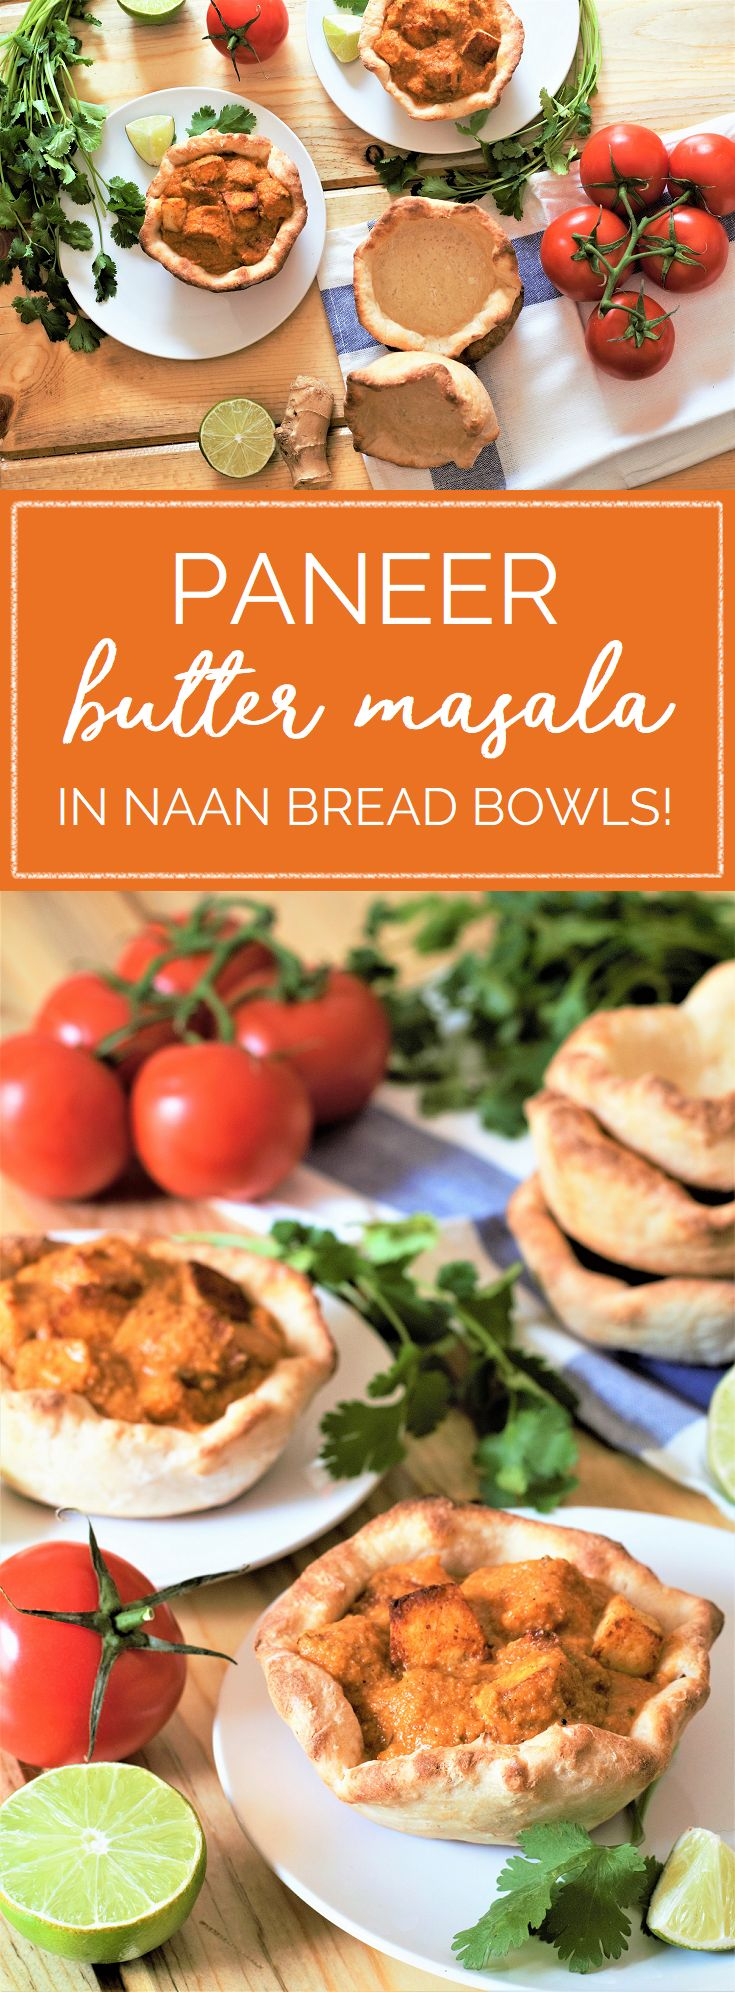 My favorite rich, creamy butter masala trades the usual chicken for fresh paneer cheese! Serve it up in a naan bread bowl for pure comfort food bliss. #buttermasala #curry #paneer #naan #indianfood | mountaincravings.com